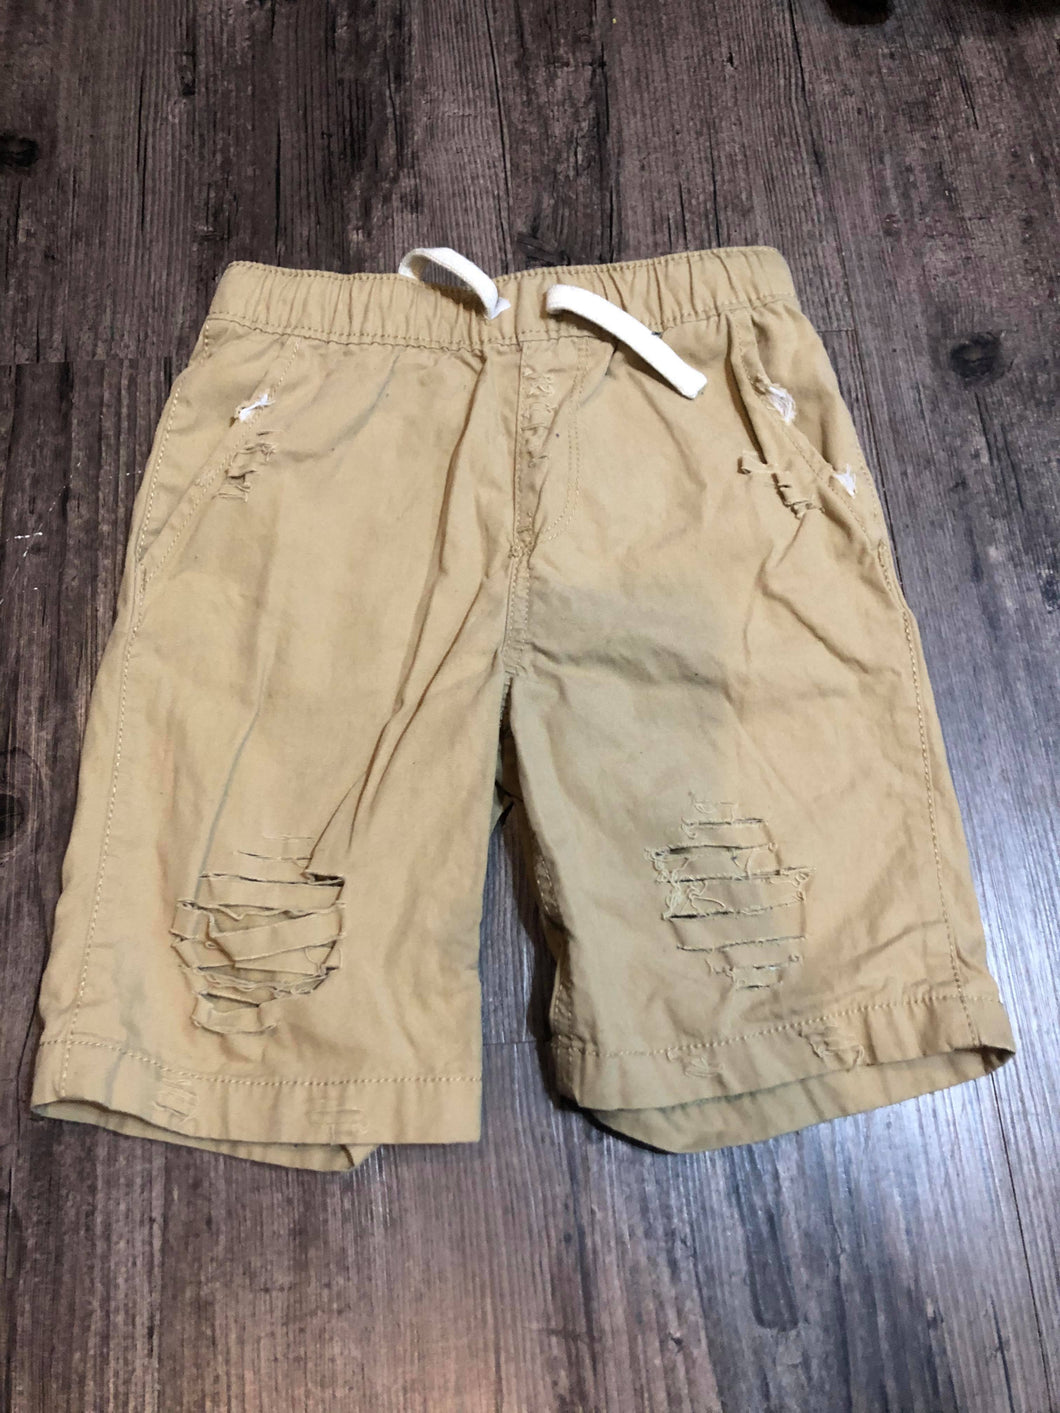 5T BOYS KHAKI SHORTS